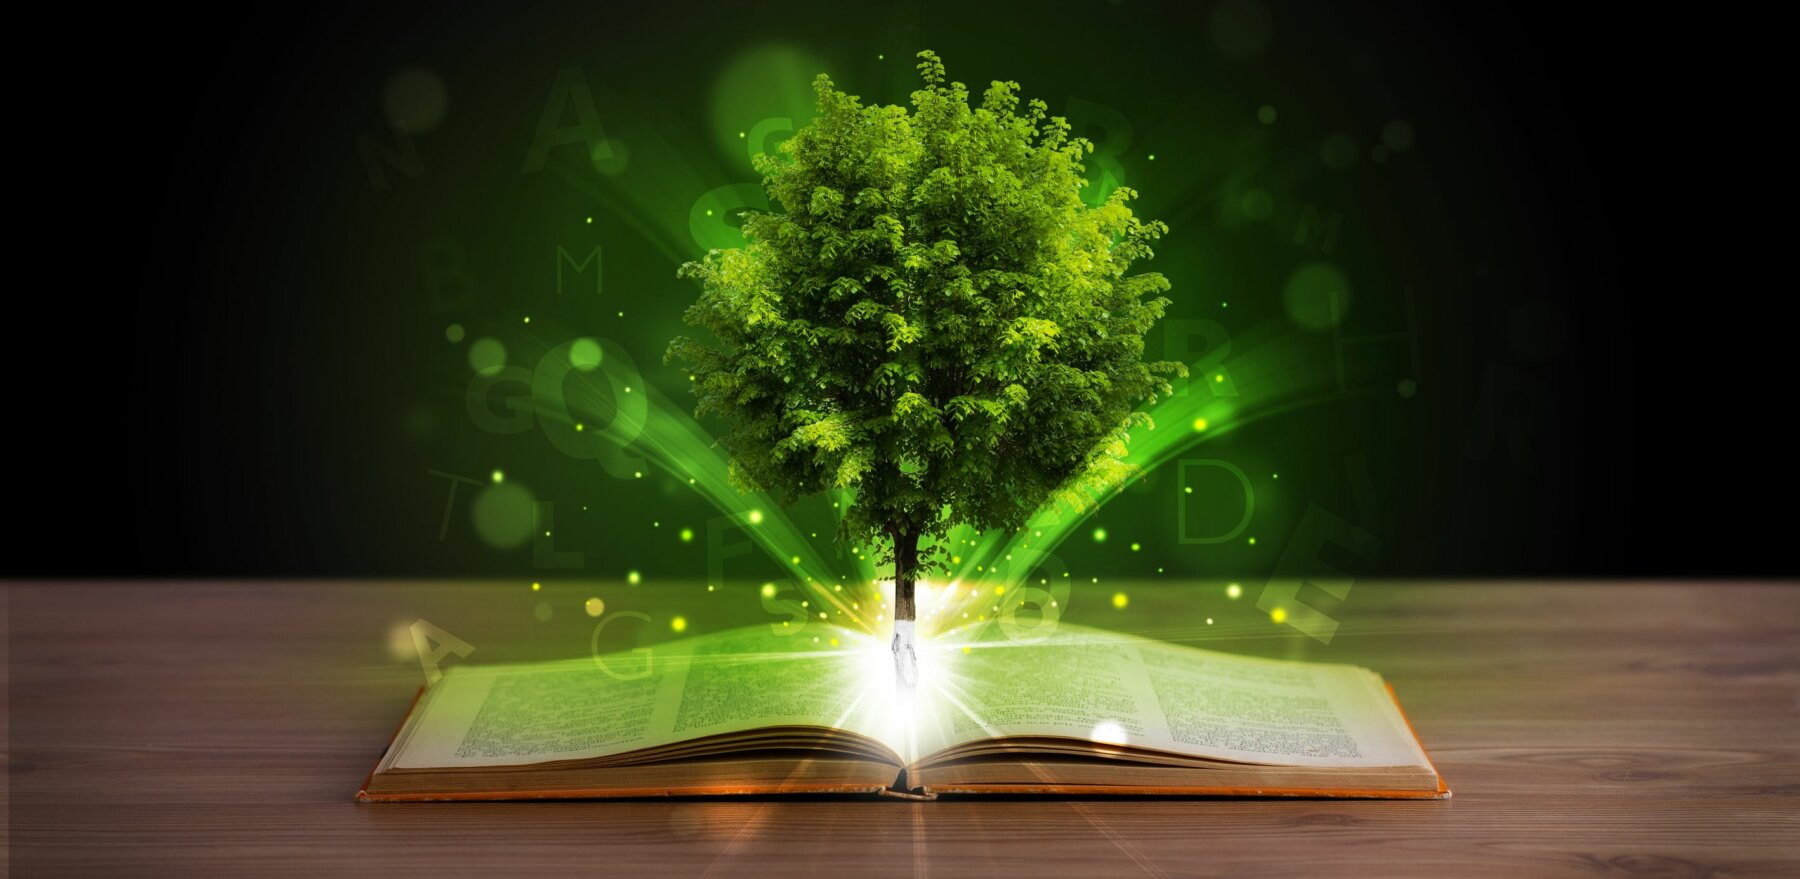 22043499 - open book with magical green tree and rays of light on wooden deck